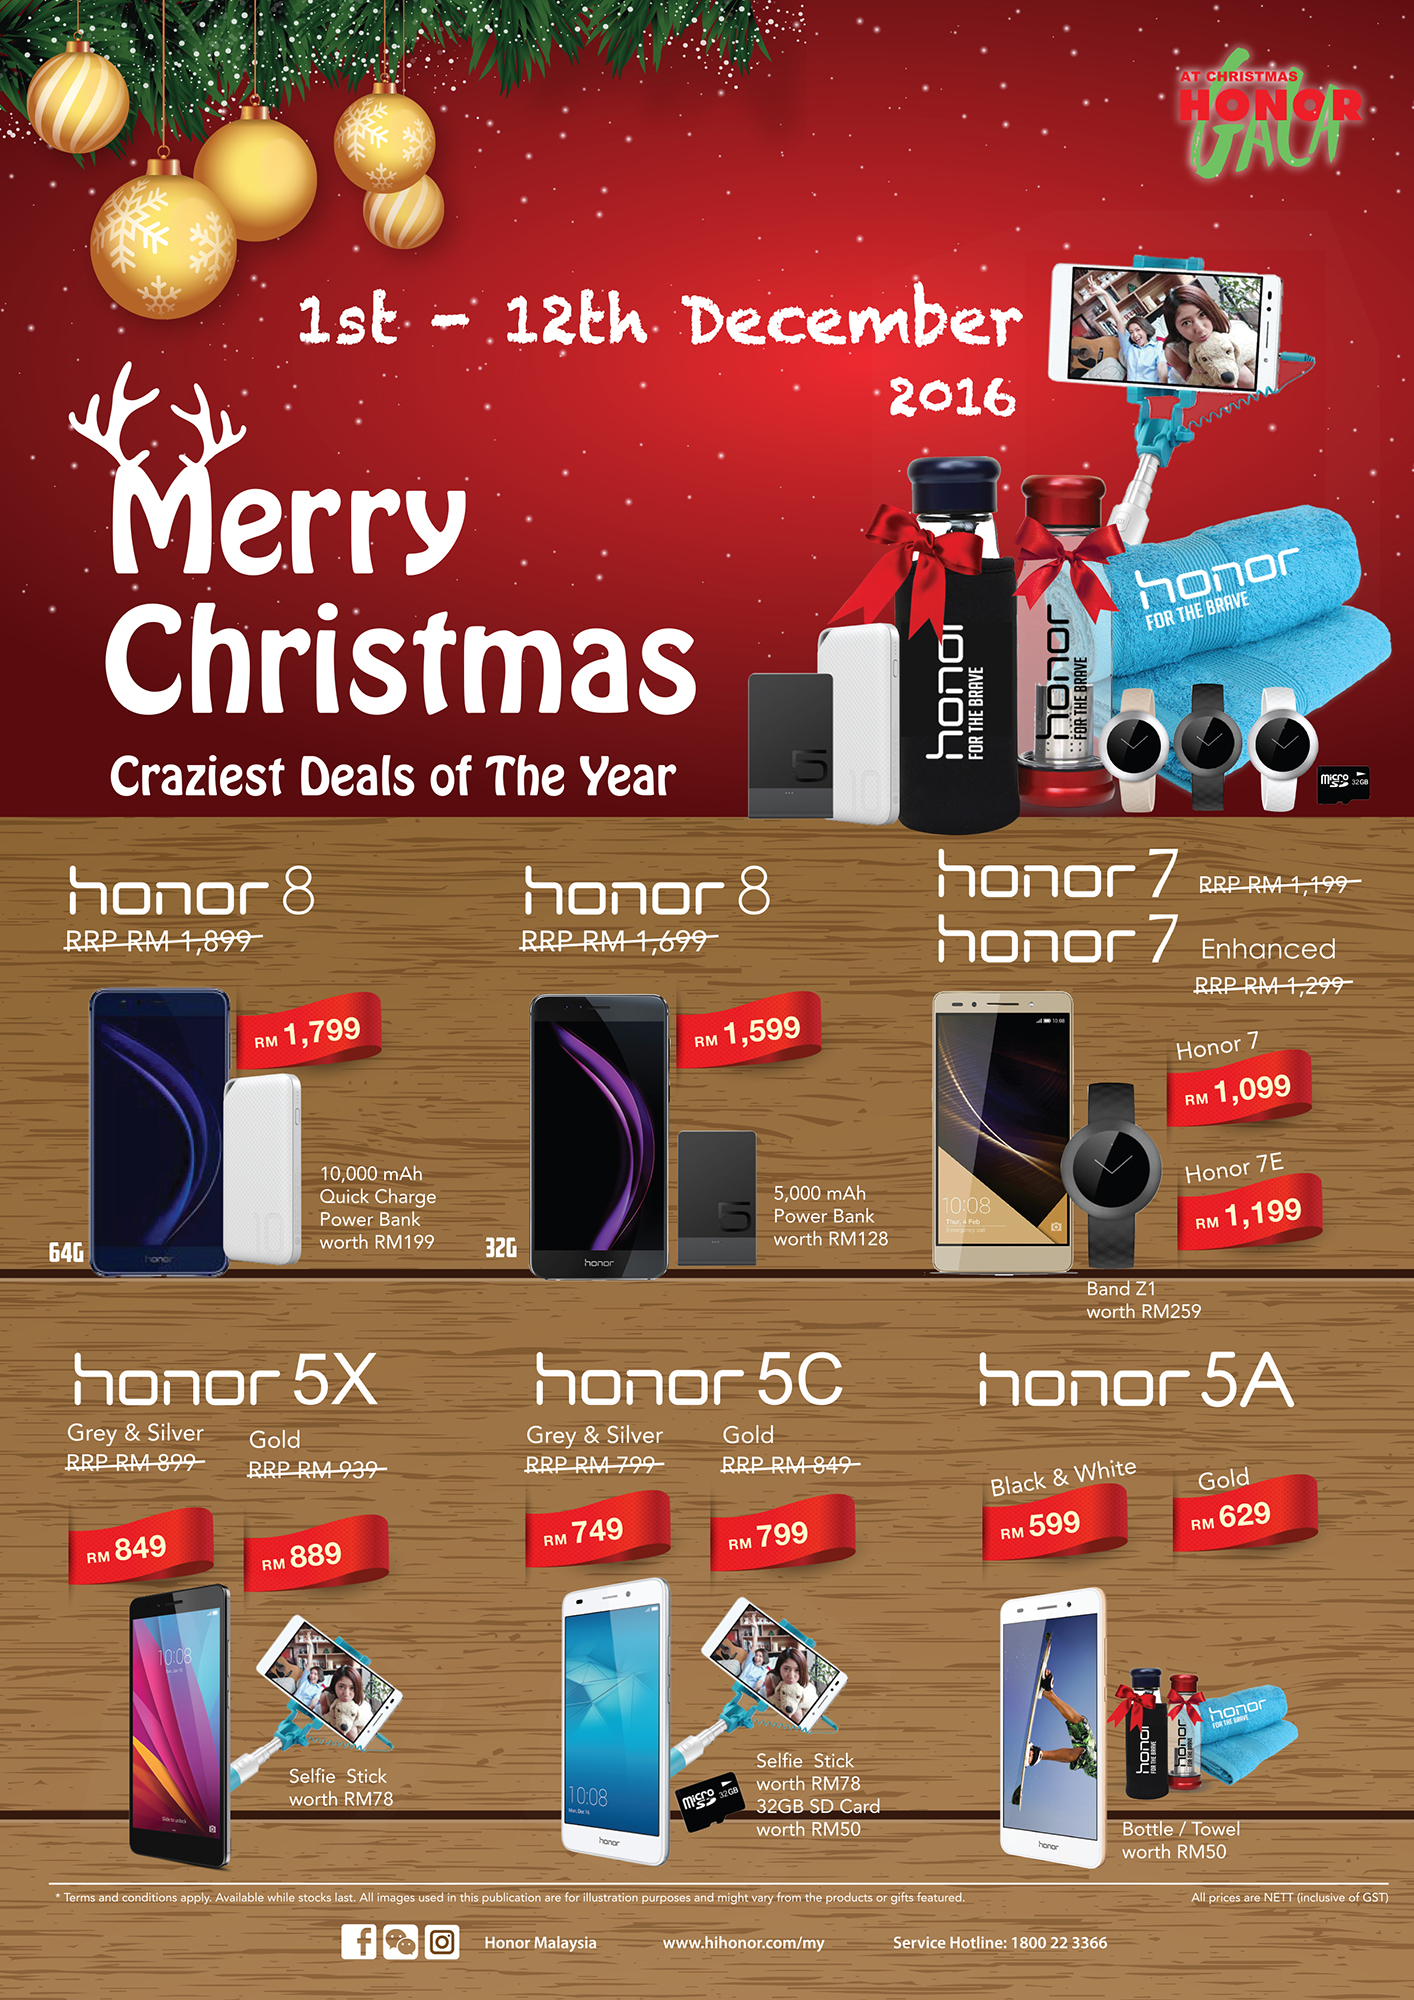 Honor Gala Christmas Promotion 2016